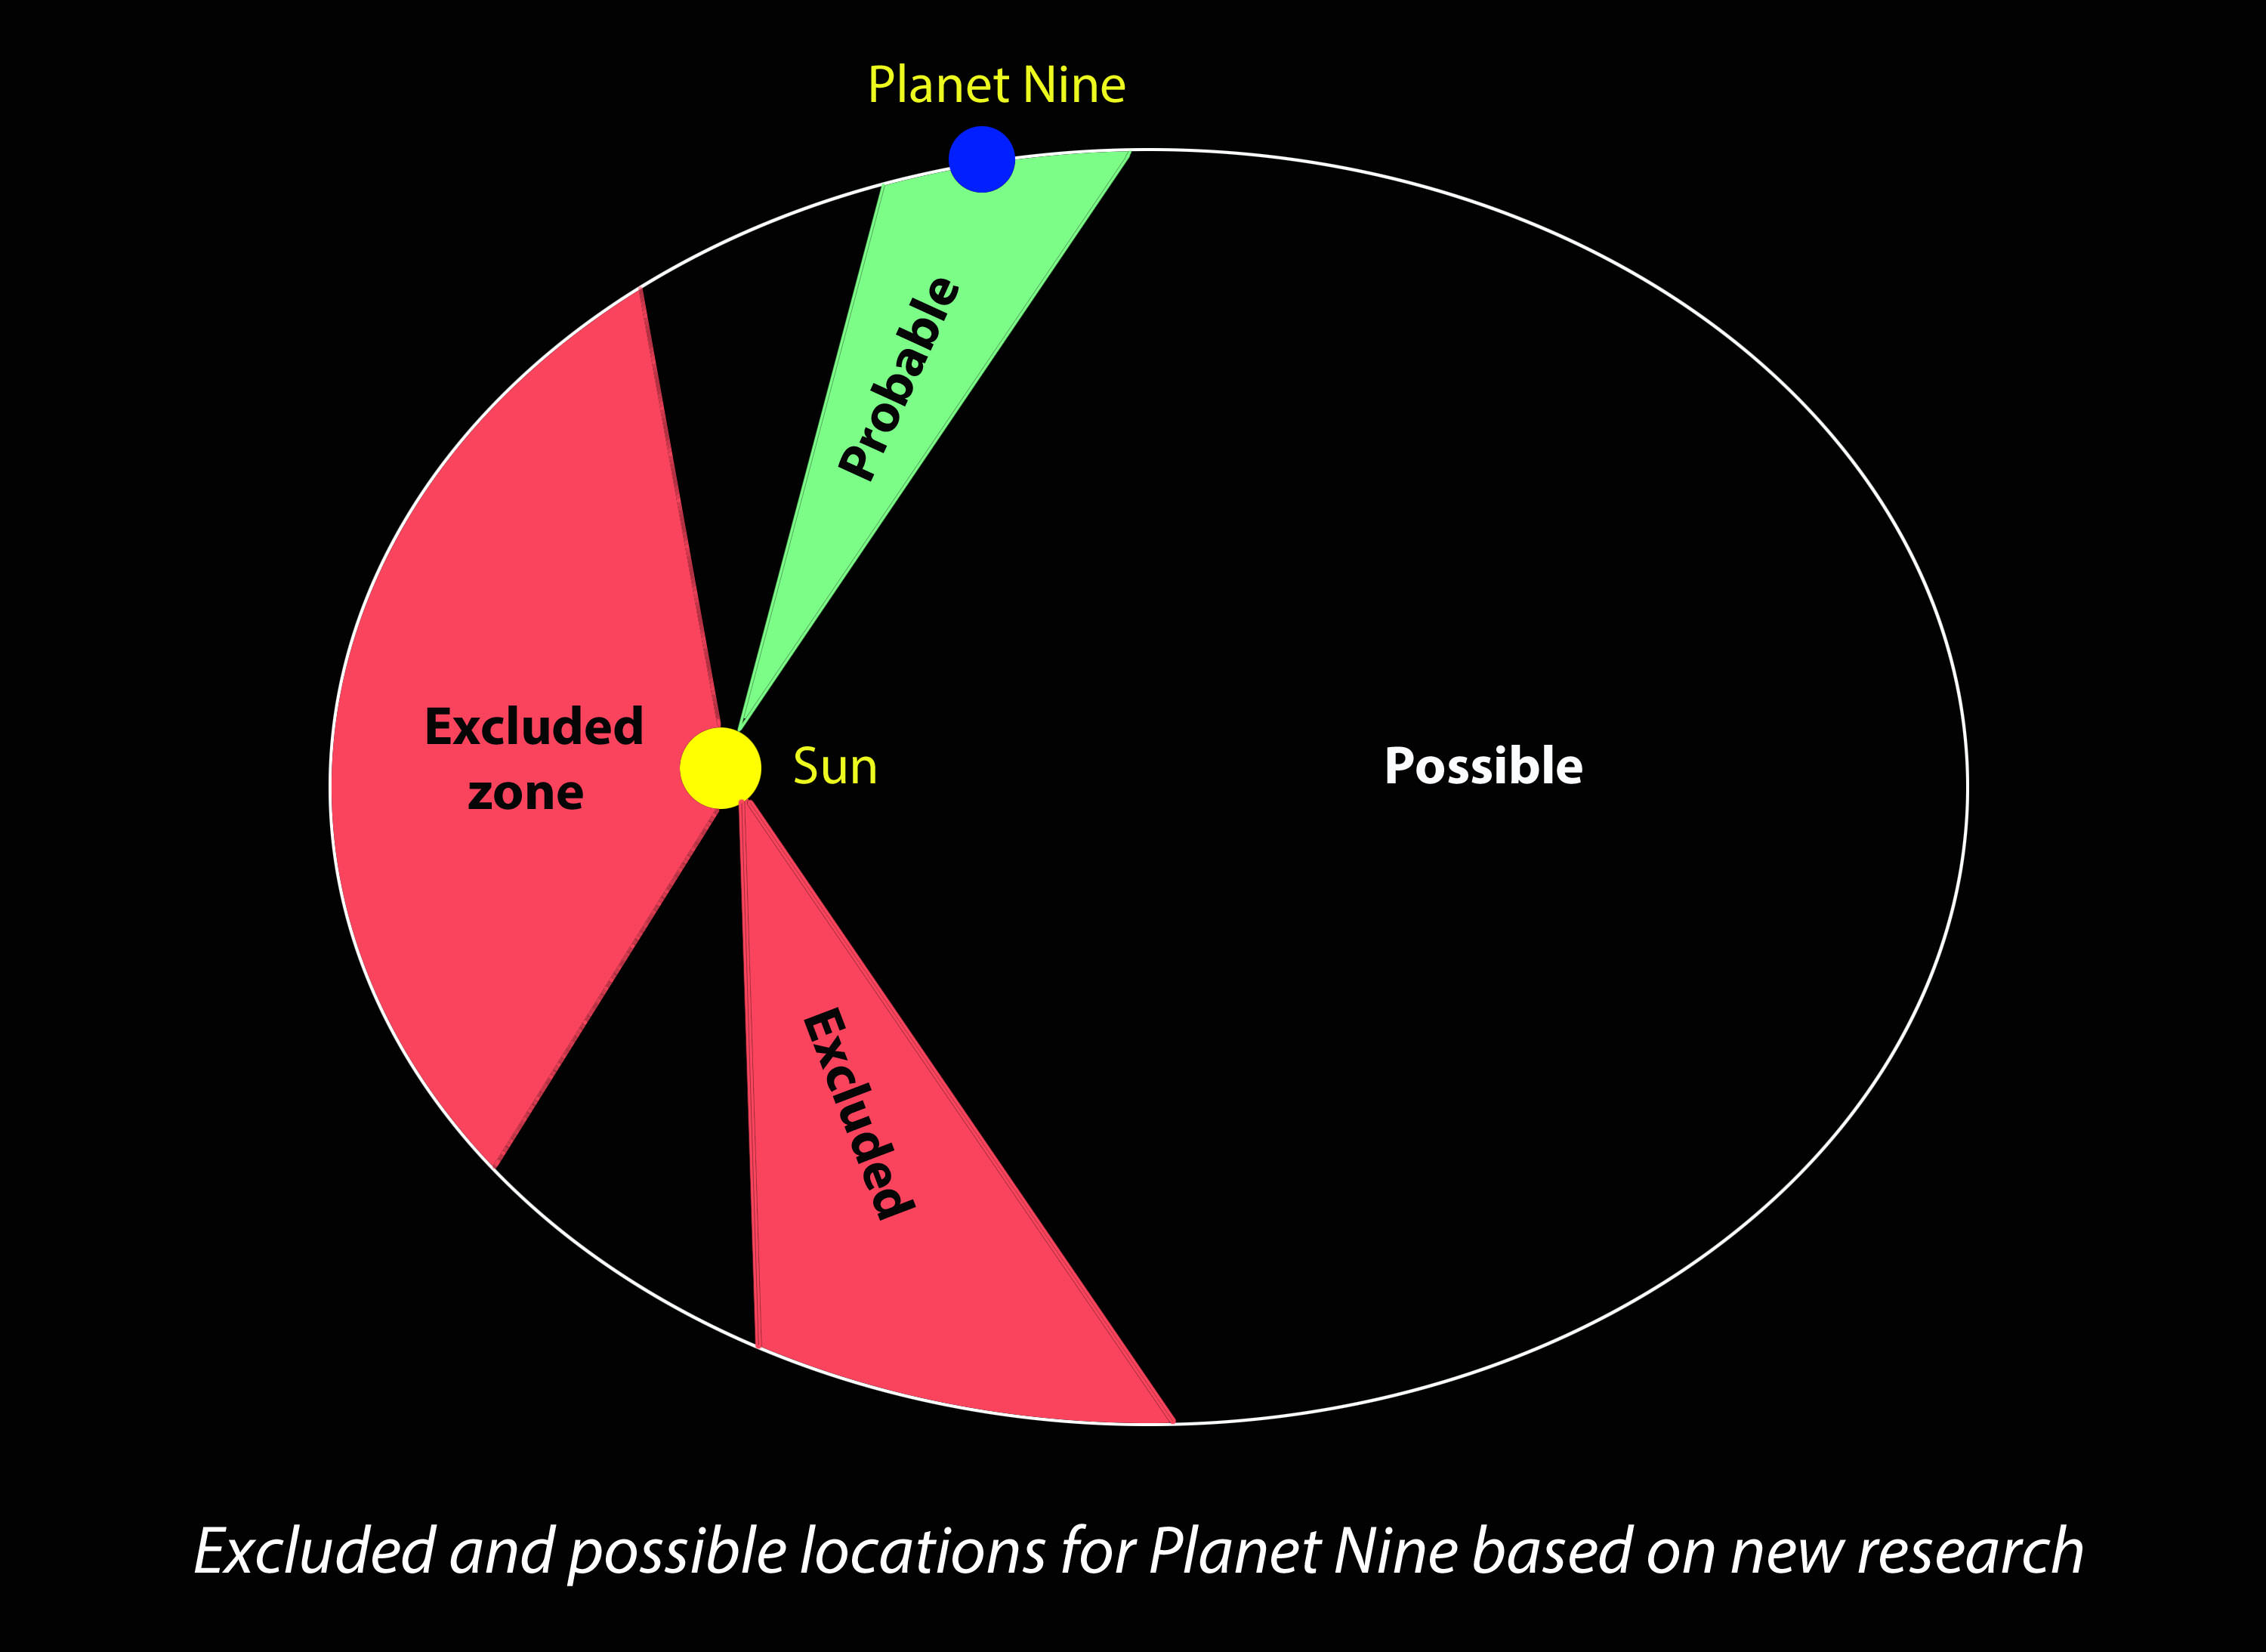 http://www.universetoday.com/wp-content/uploads/2016/02/Planet-9-zones-Mine.jpg